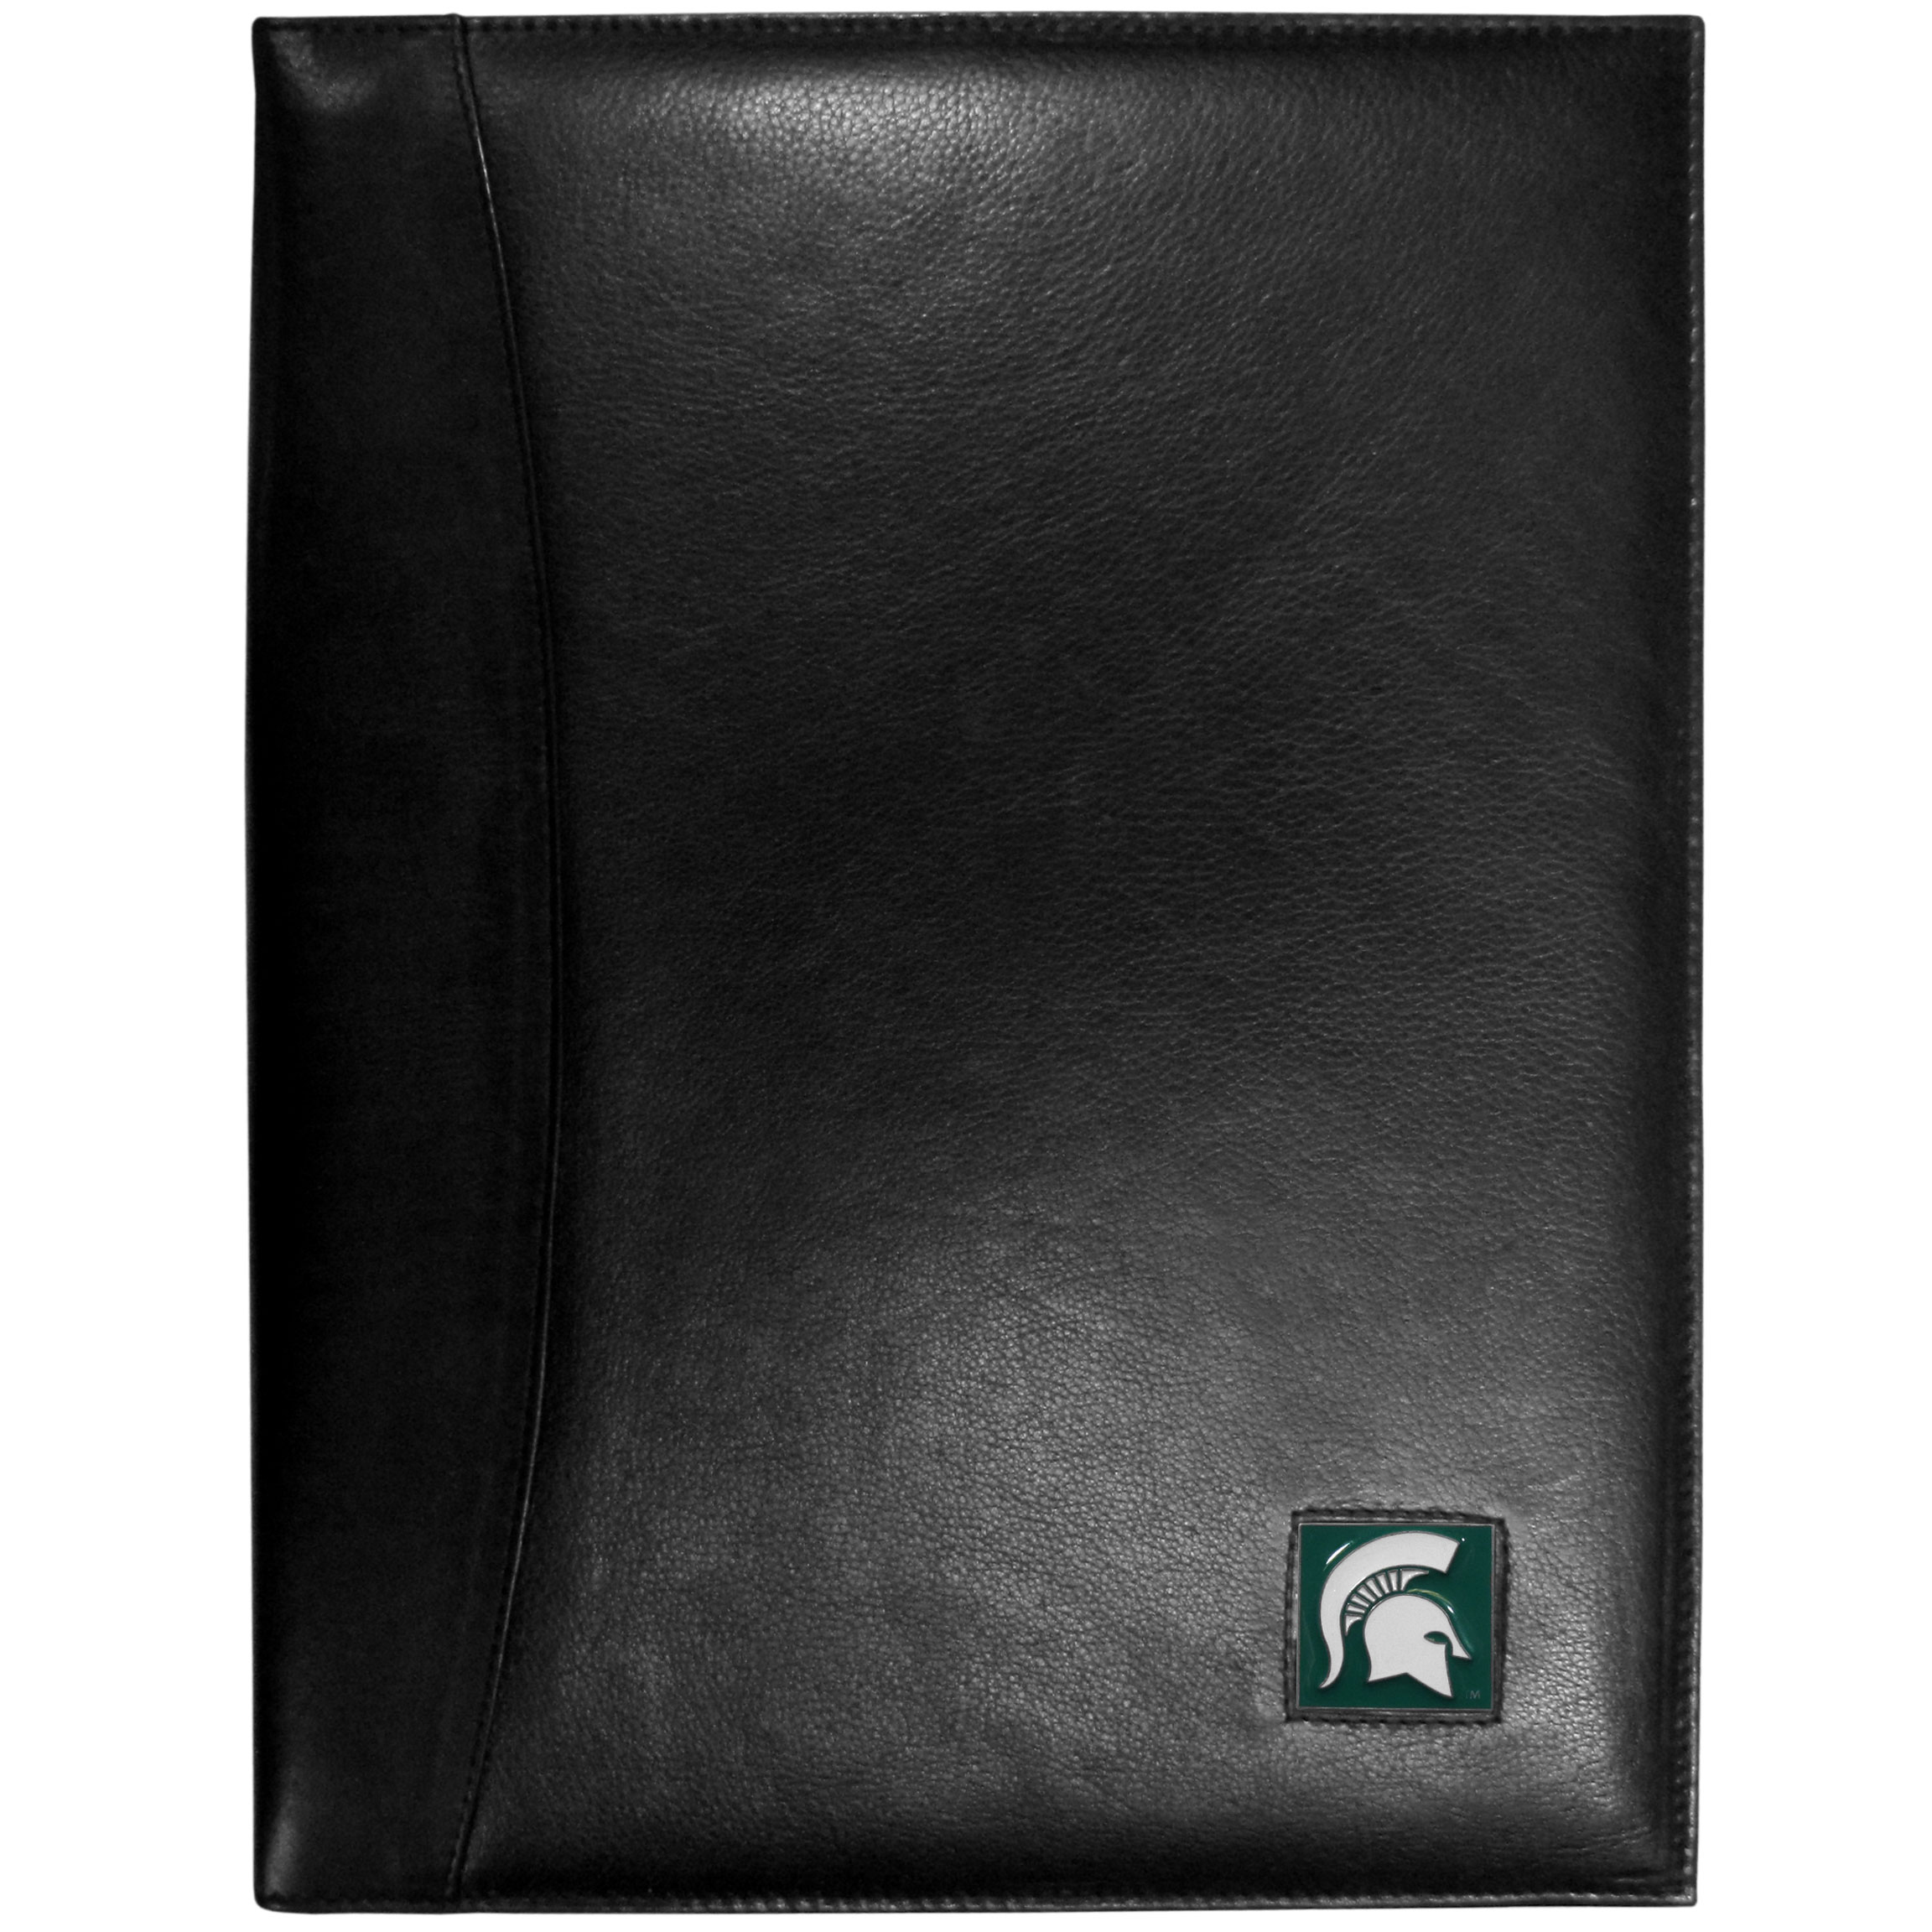 Michigan St. Spartans Leather Portfolio - This genuine leather portfolio fits an 8 1/2 x 11 inch writing pad and includes slots for your credit cards, a spacious pocket and a pen holder. The front features a hand painted metal square with the primary Michigan St. Spartans logo emblem.